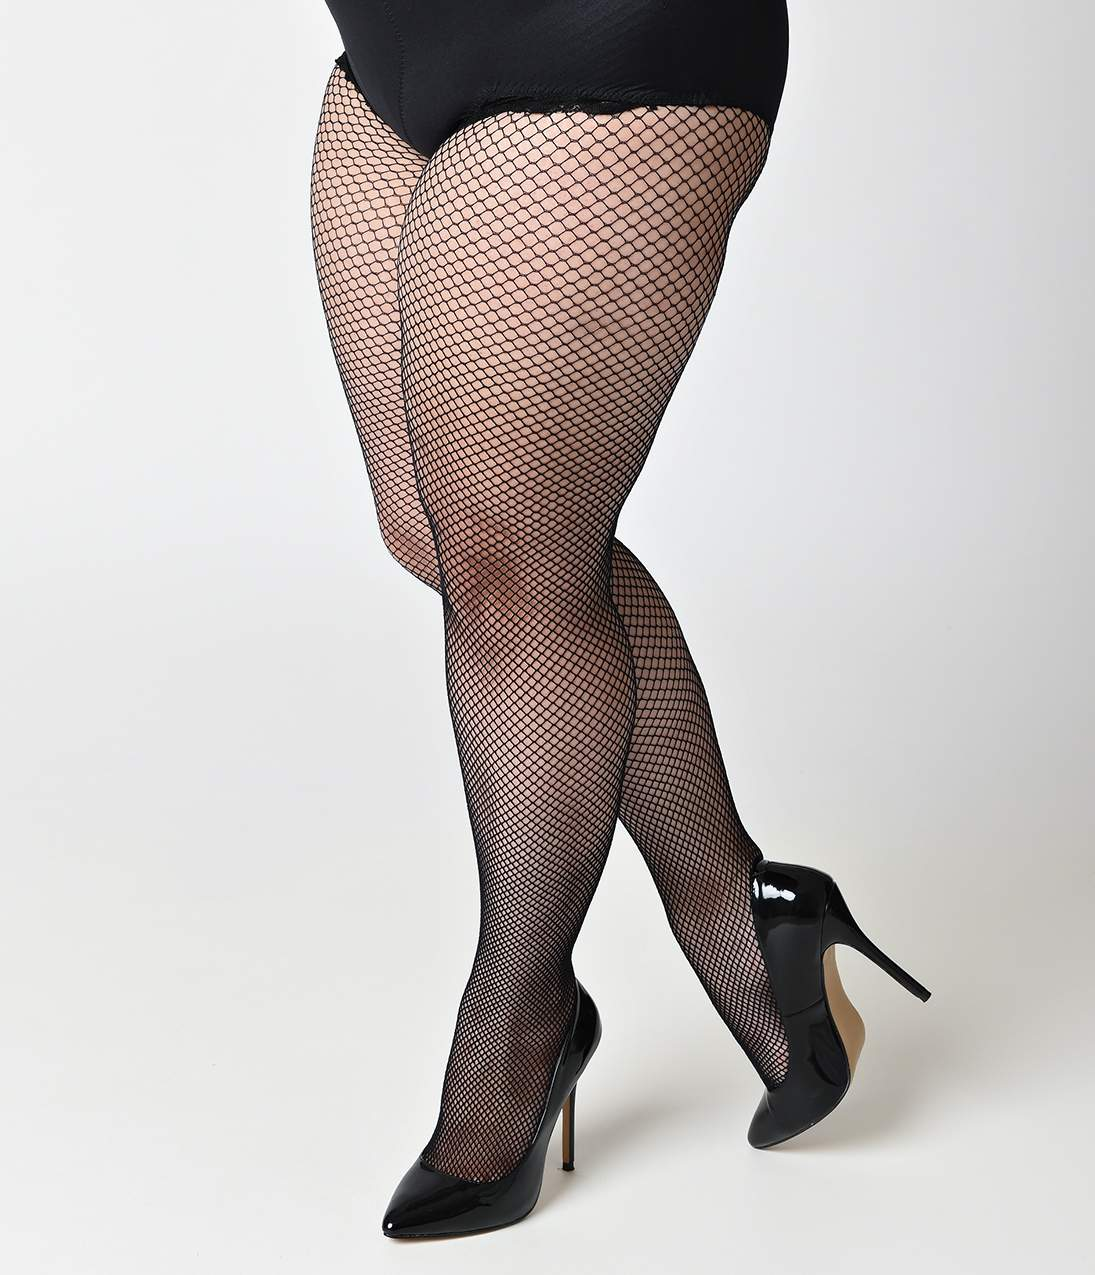 85e031d19 Plus Size Black Fishnet Tights – Unique Vintage